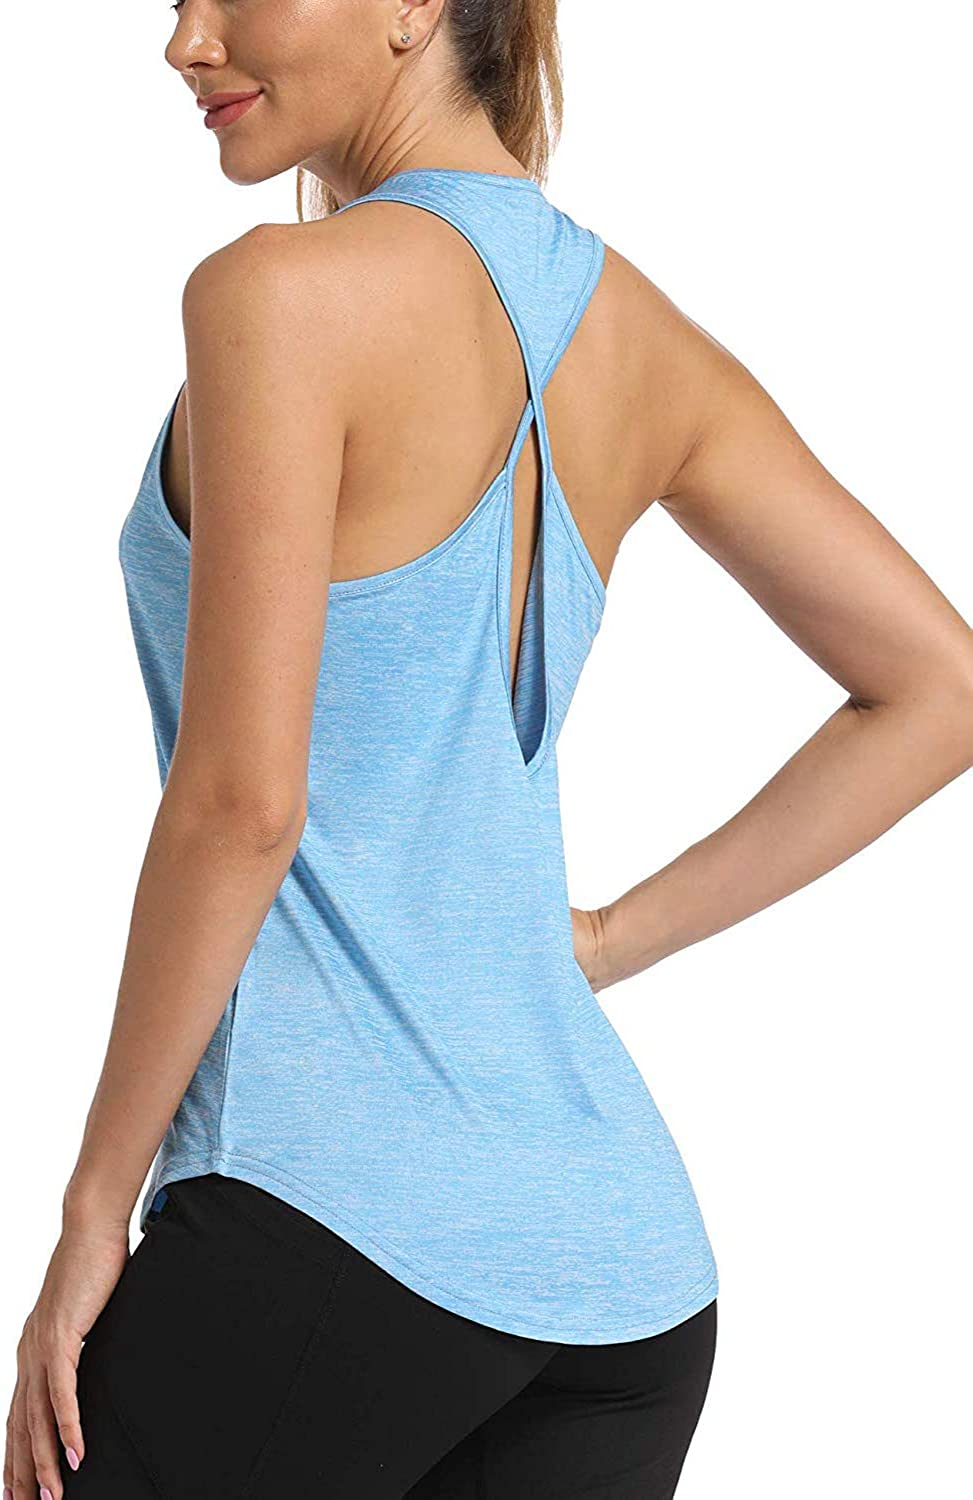 FASBAY Yoga Tank Tops for Women Activewear Workout Tank Tops Open Back Running Sports Shirts